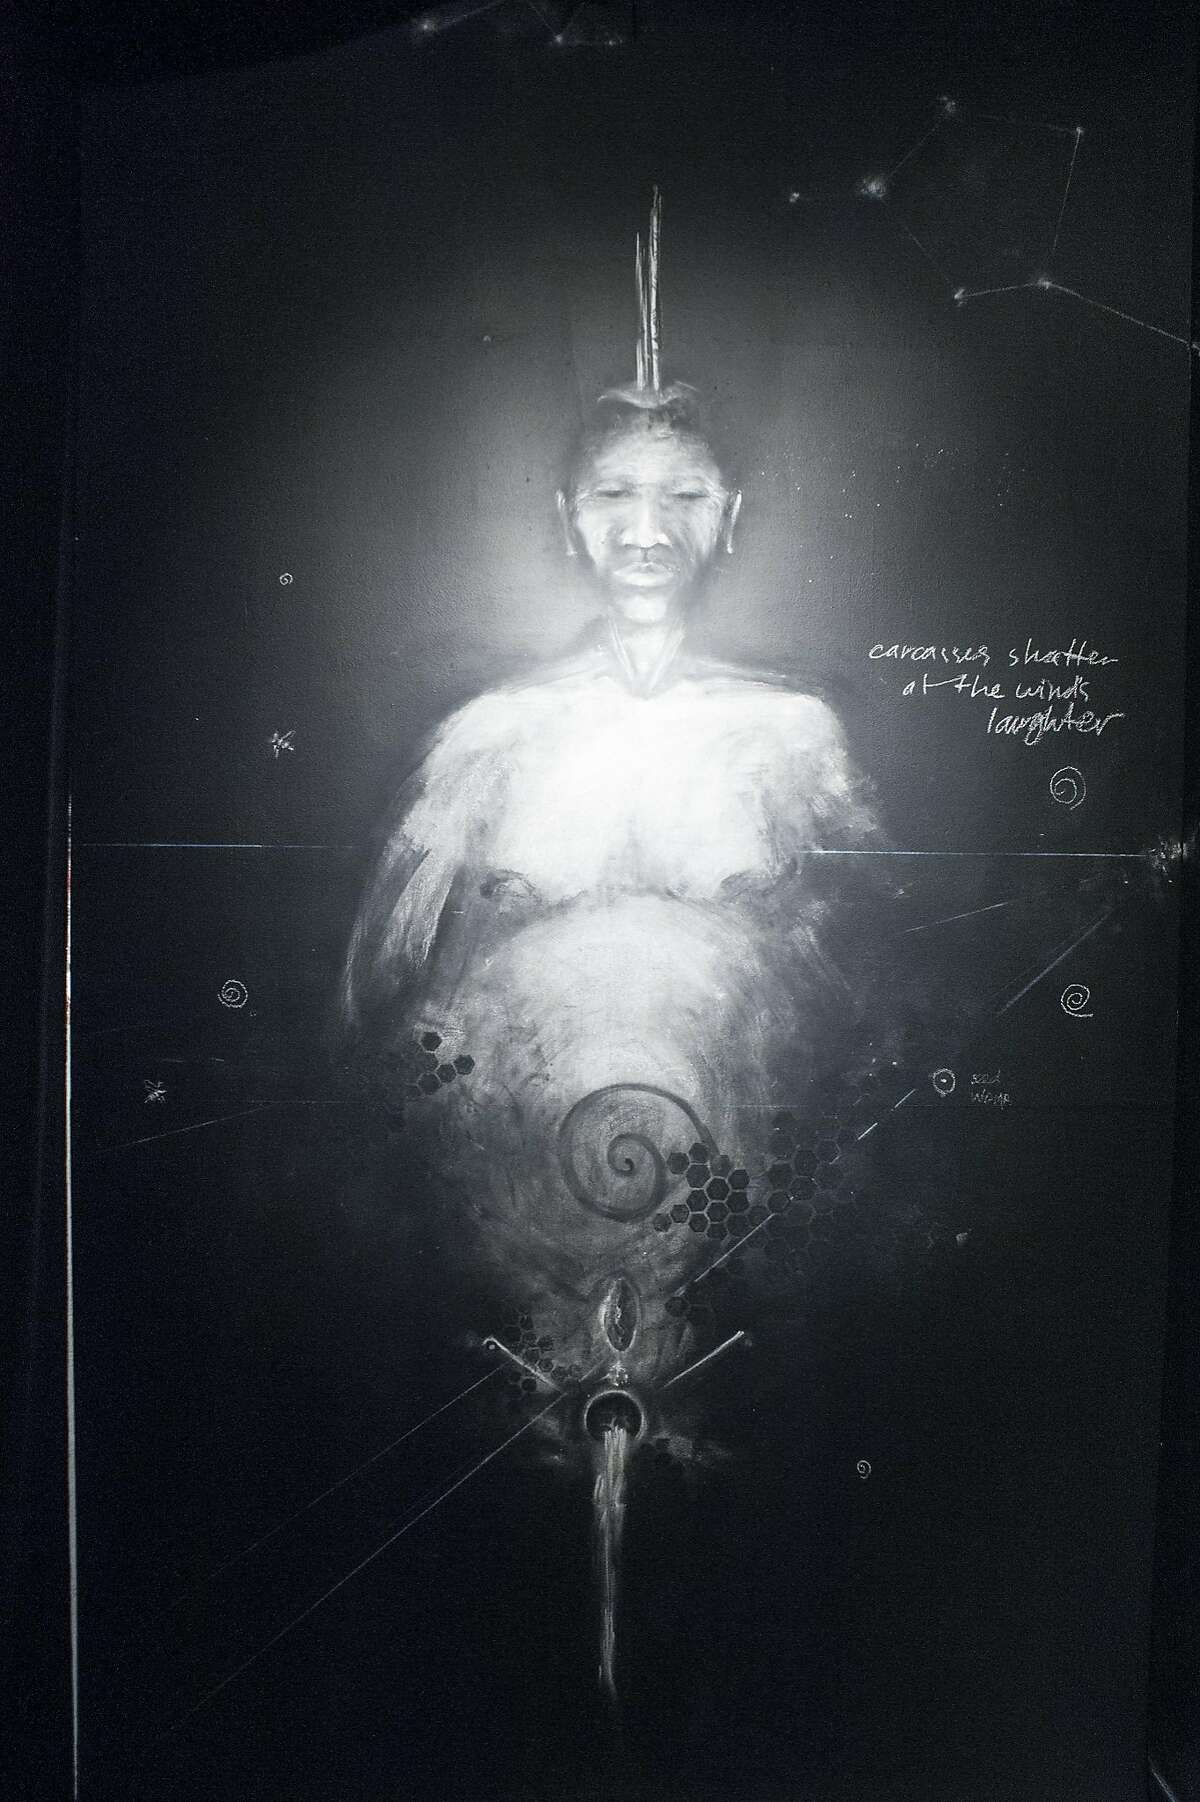 A chalk drawing by Sage Stargate carries out the theme of communing with ancestors.